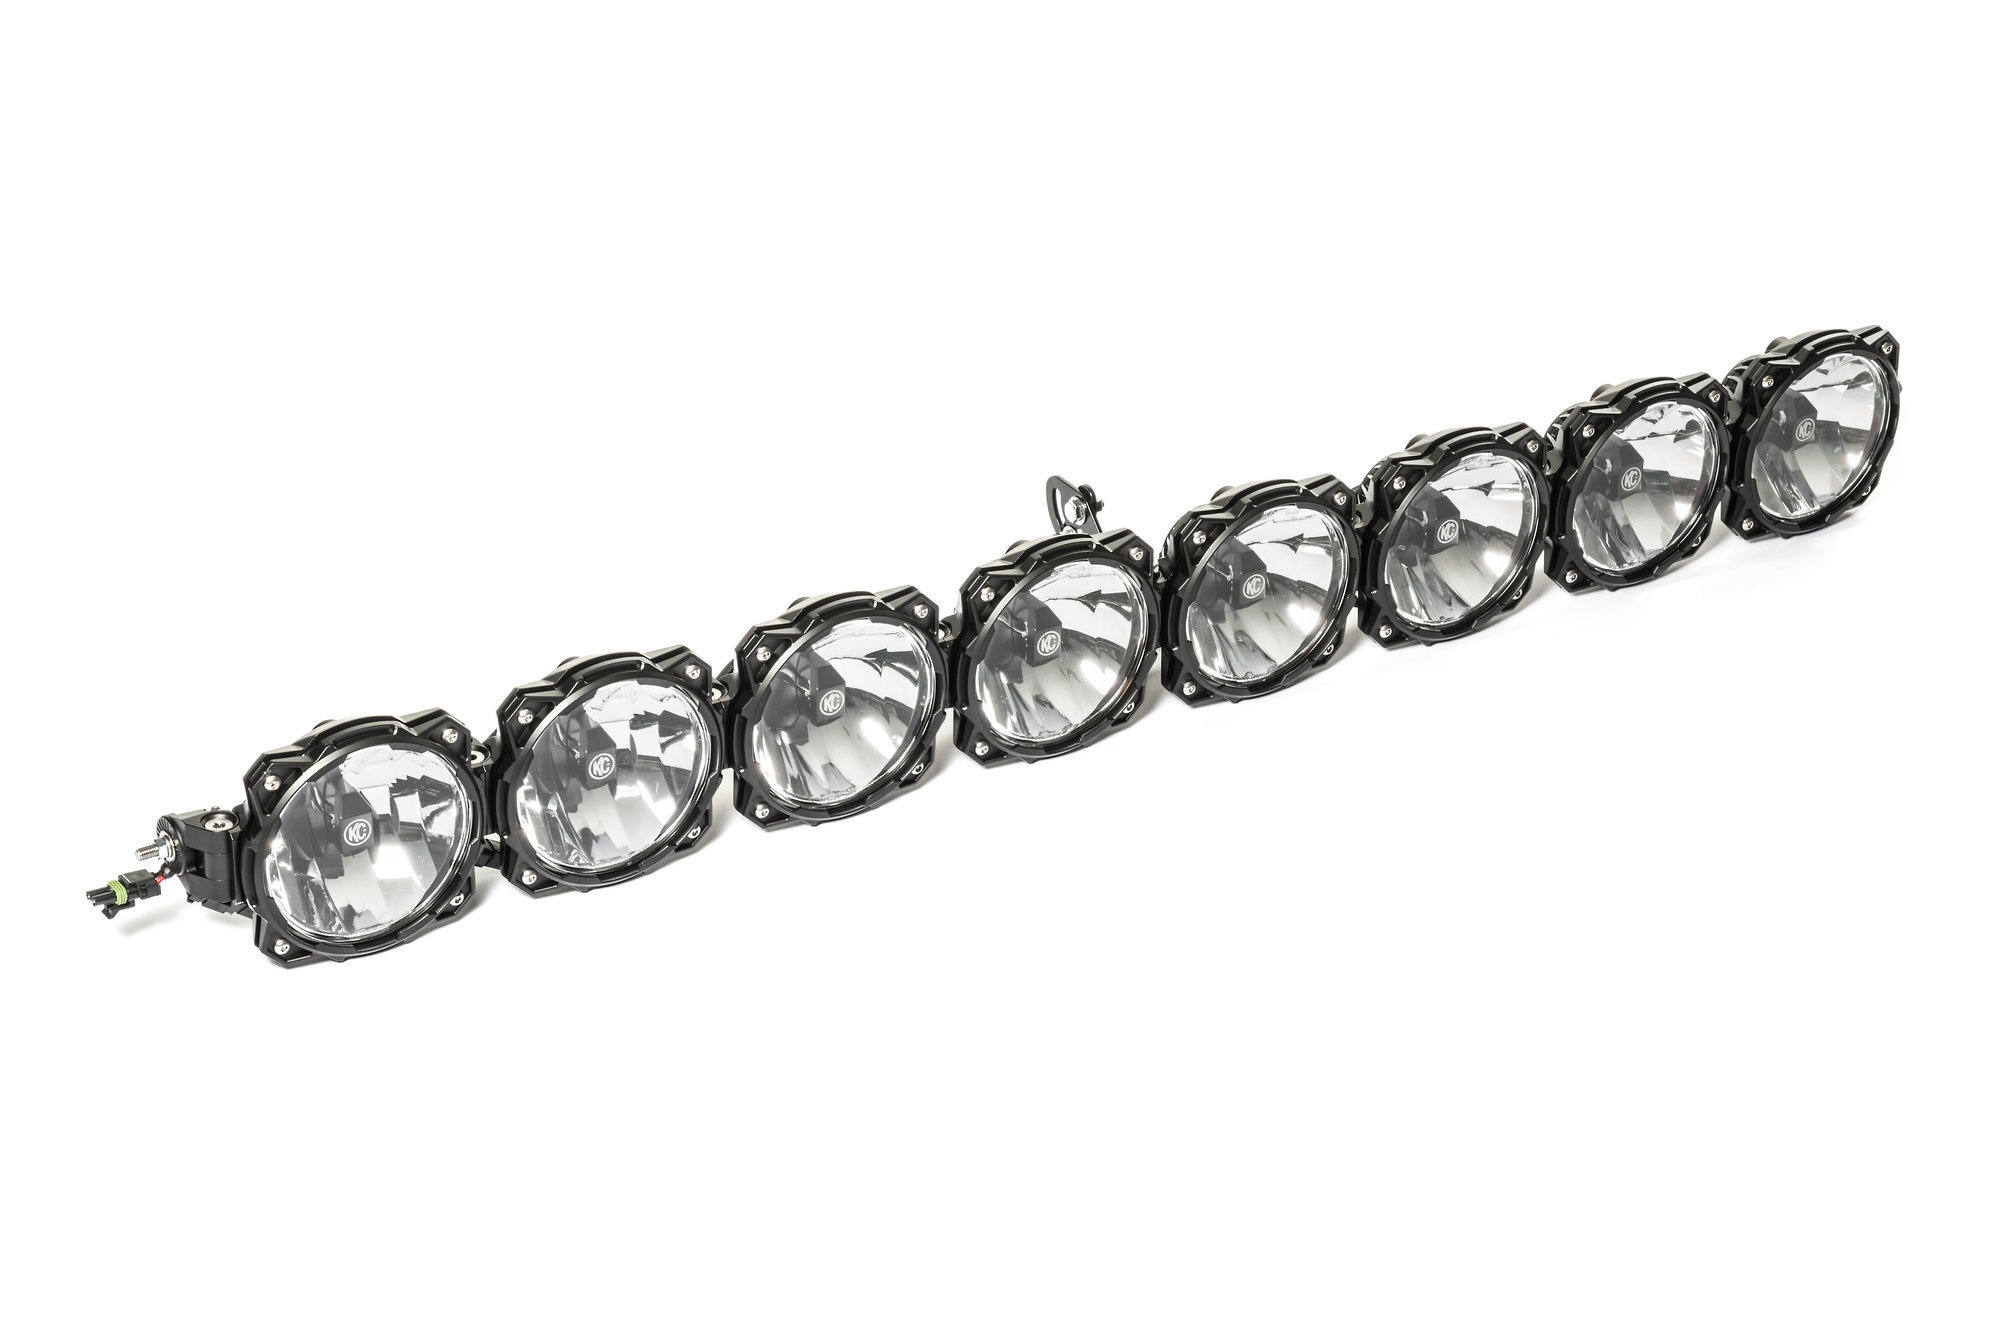 KC HiLiTES 91336 Gravity Pro6 LED Light Bar Kit for 18-20